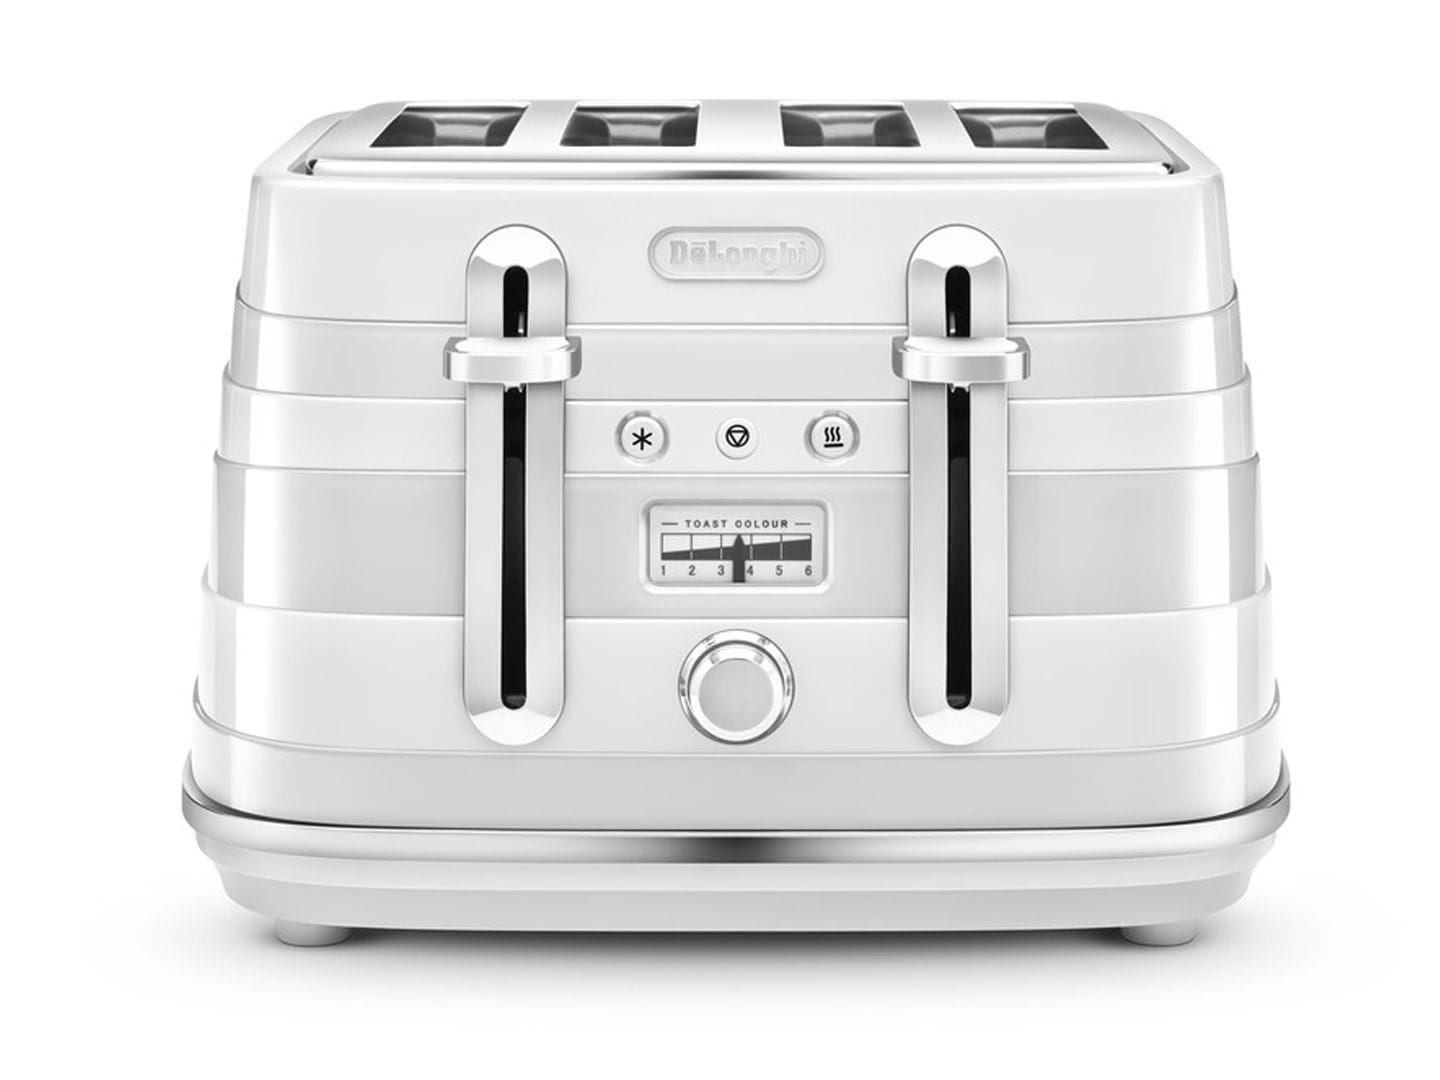 Clearance Stock: Avvolta 4 Slice Toaster - White CTA 4003.W